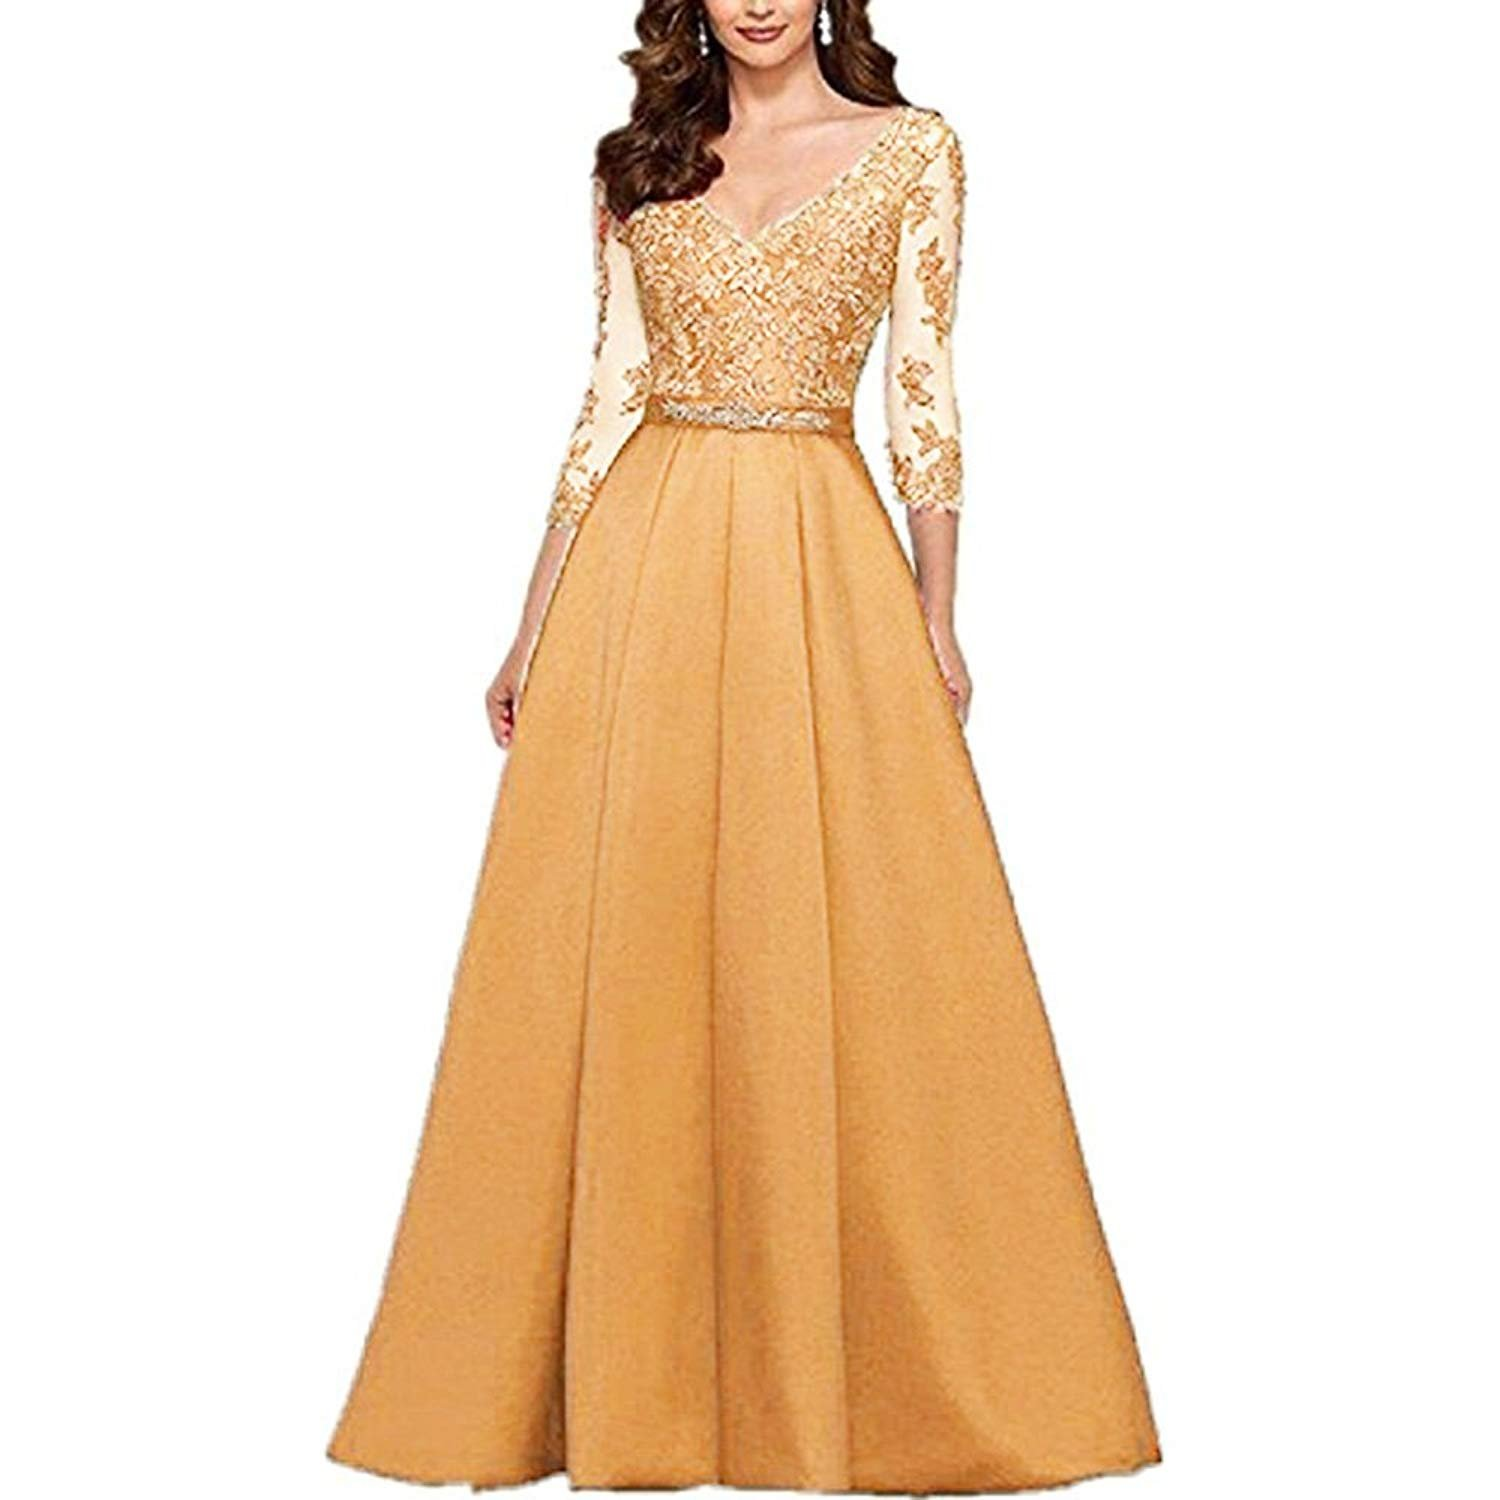 ynqnfs Women's V-Neck 3/4 Sleeves Prom Dress Lace Long Mother of The Bride Dresses